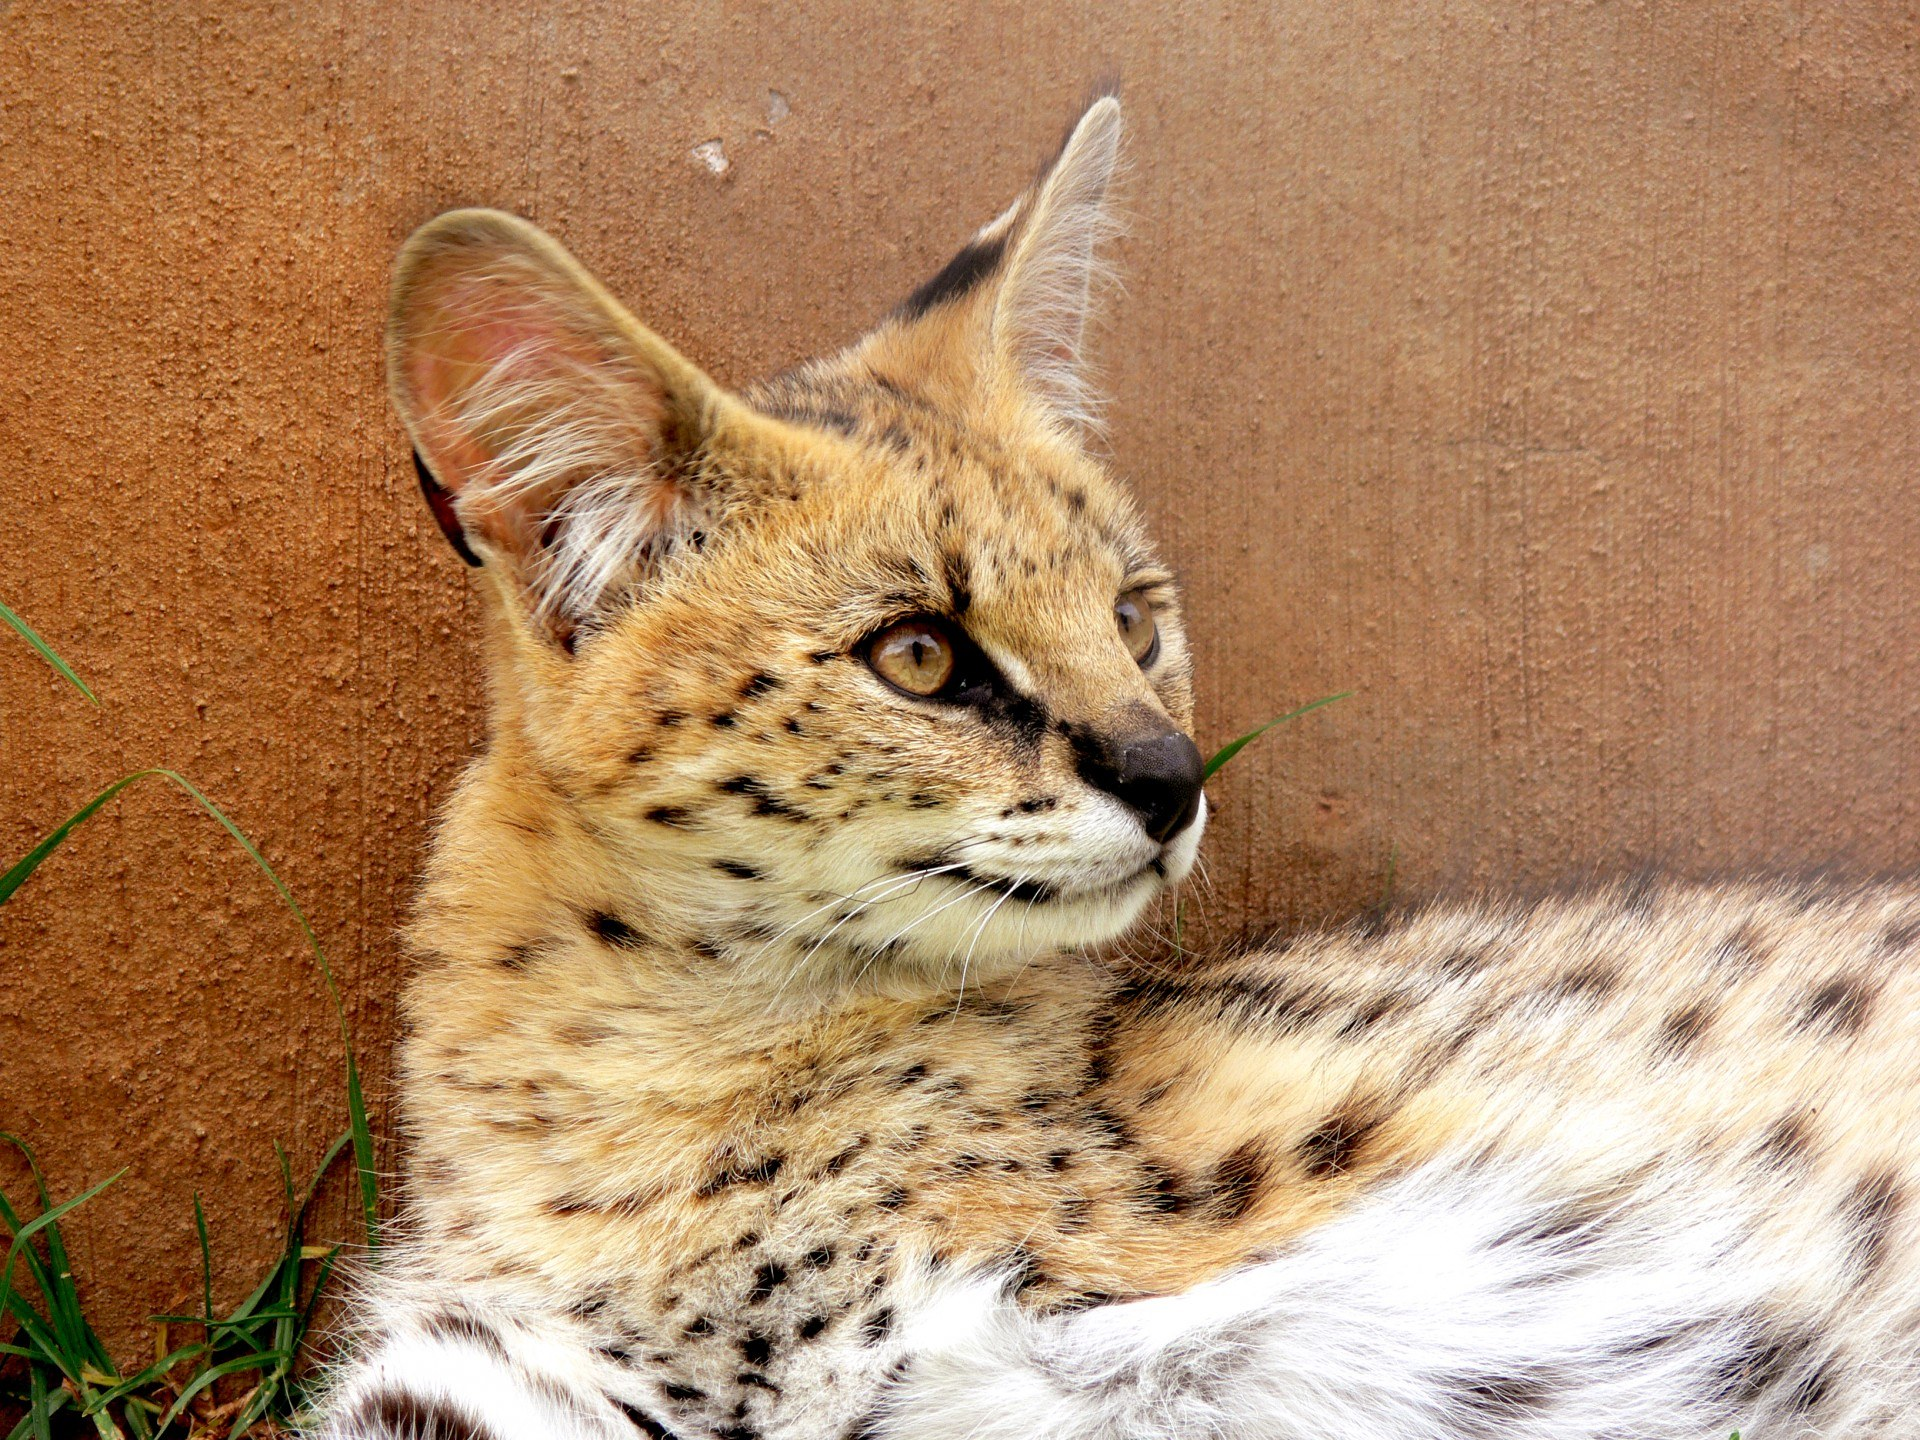 Serval Wild Cat with ear tuft